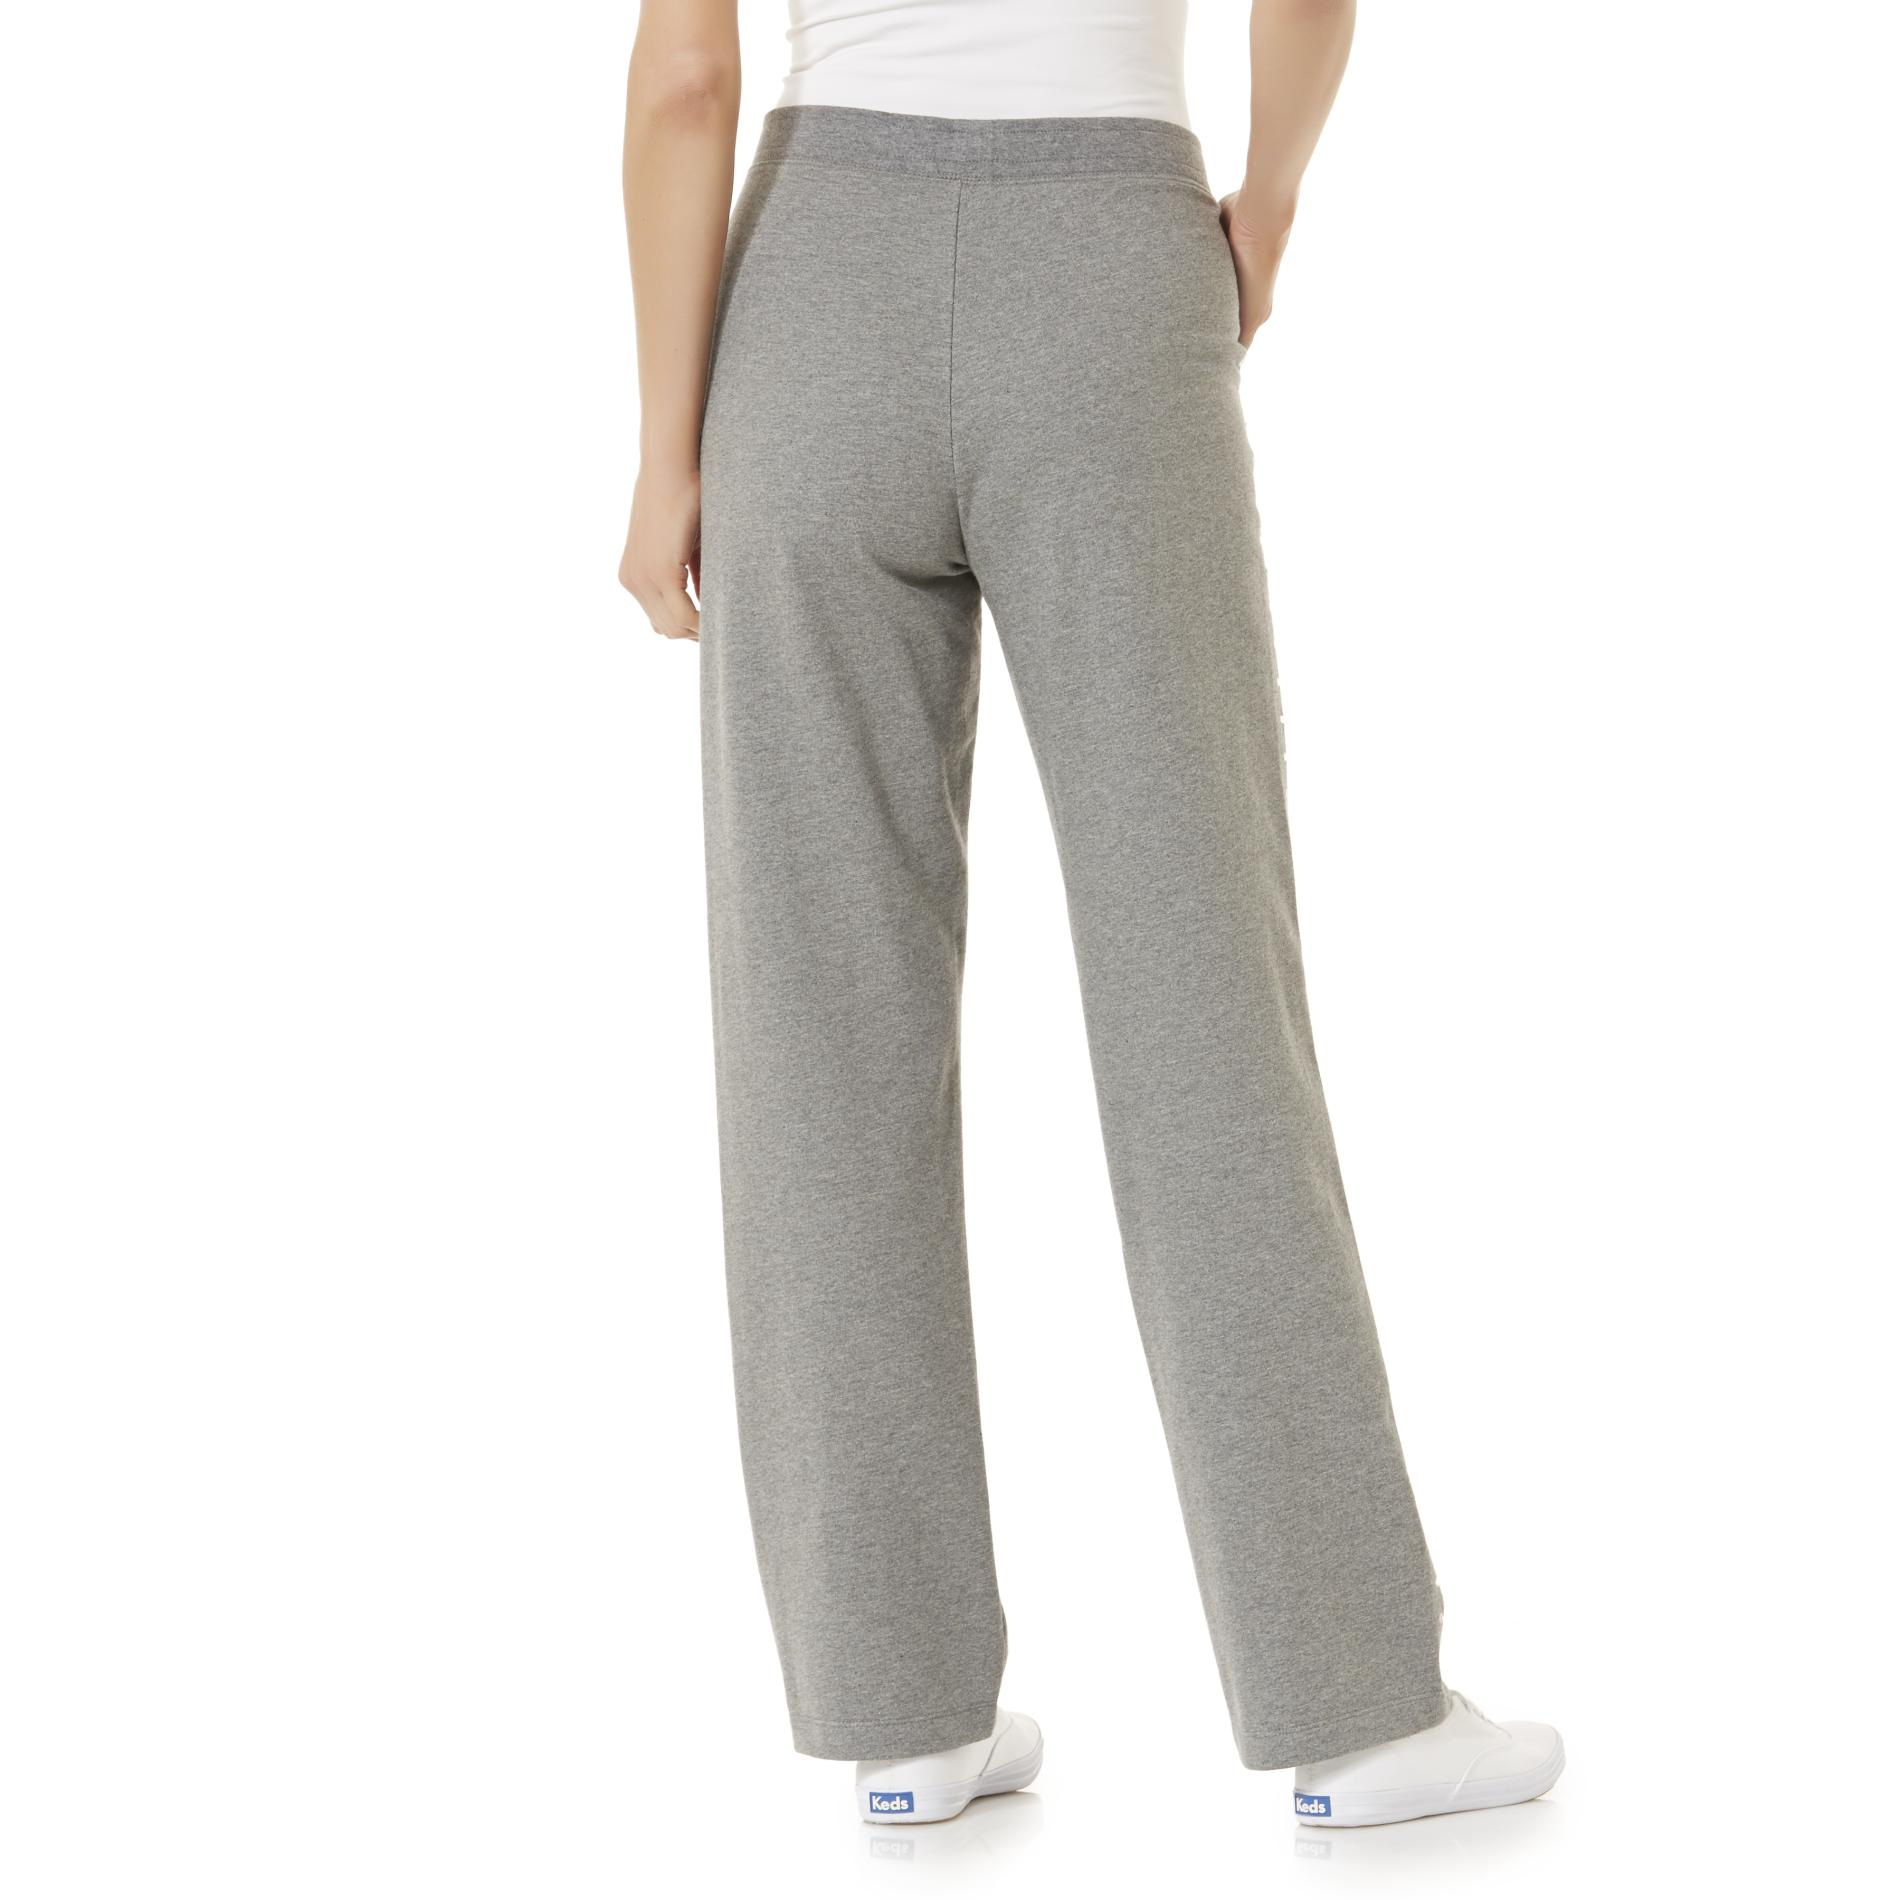 Jaclyn Smith Women's Embellished Lounge Pants